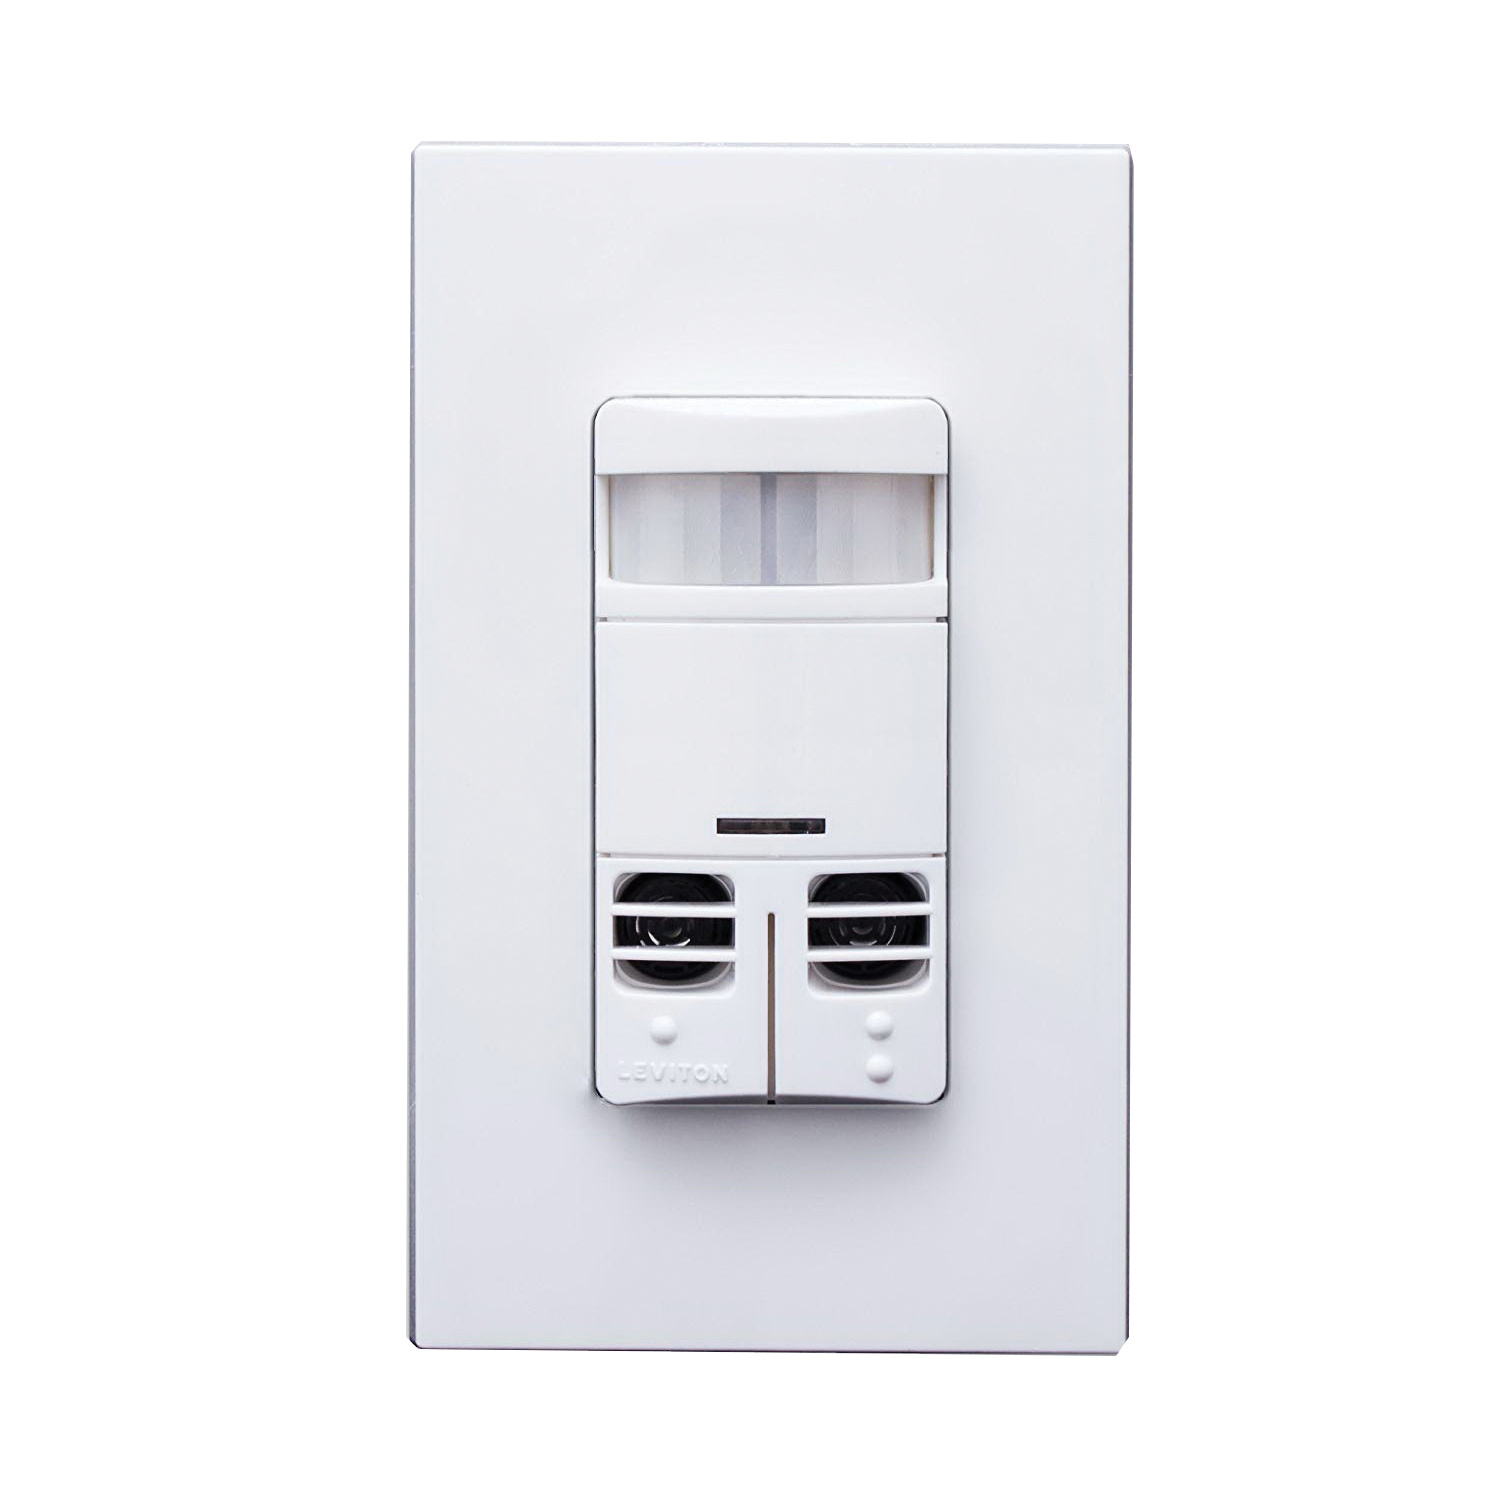 Wiring Light Sensor 277 240 Reinvent Your Diagram Leviton Two Switch Ossmd Gdw Dual Relay Multi Technology Passive Infrared Rh Usesi Com Motion 3 Way